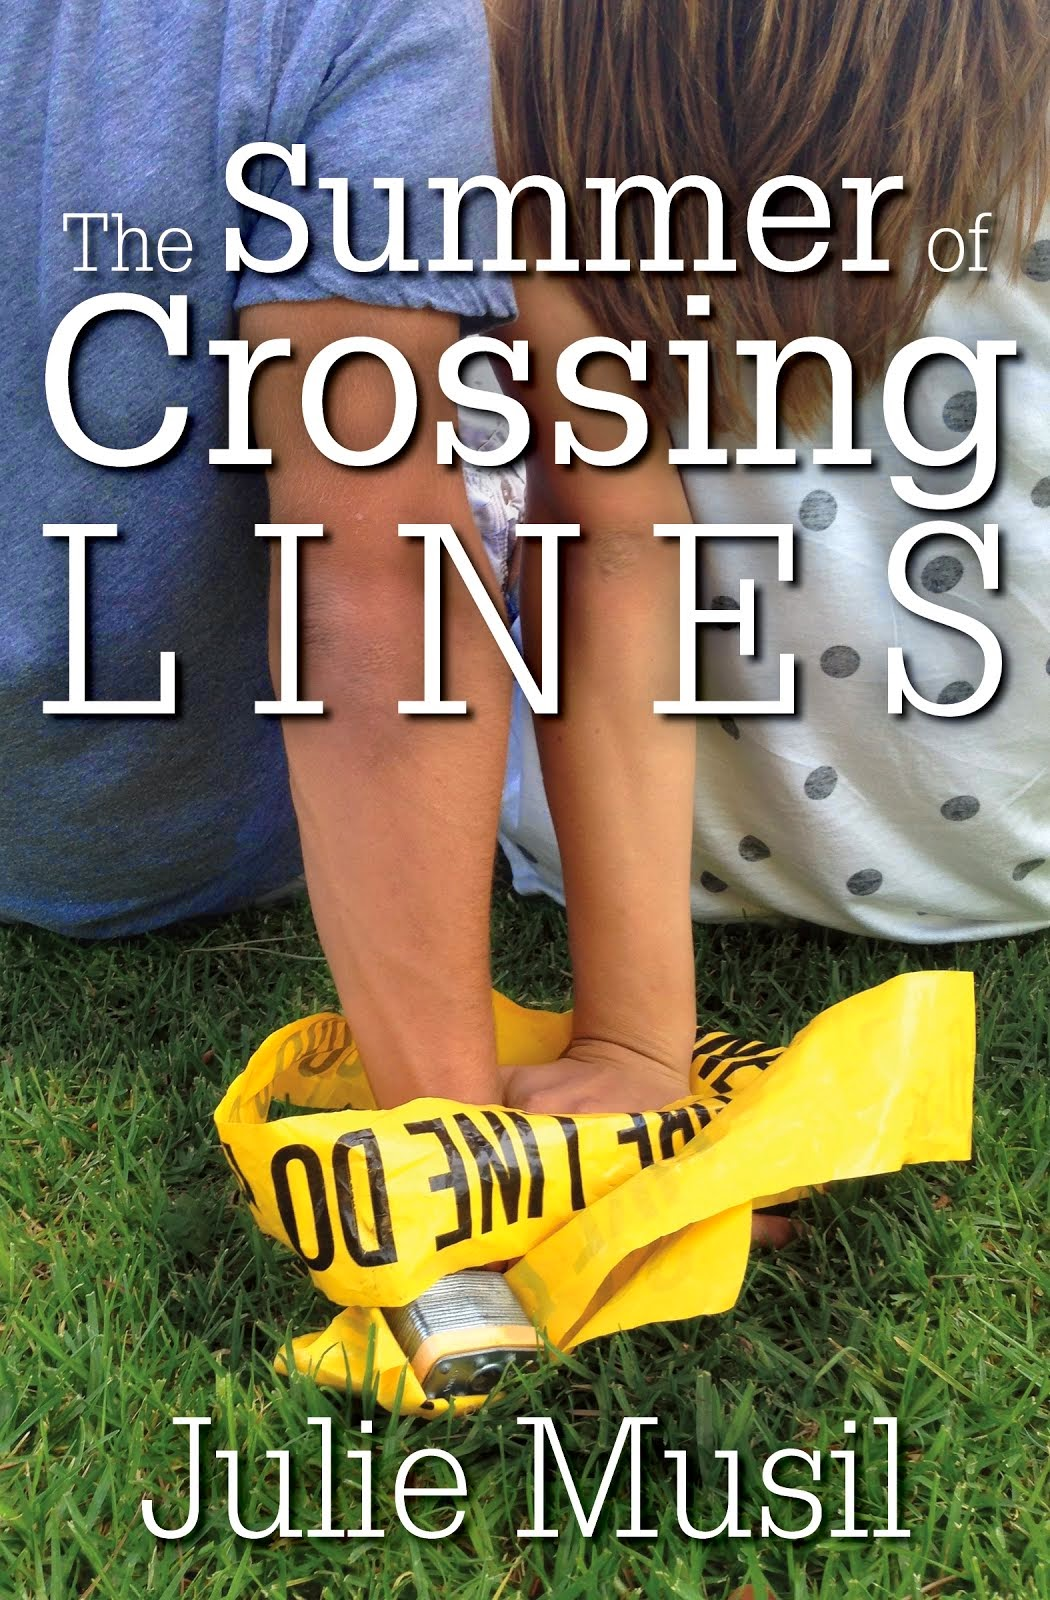 Coming Soon! The Summer of Crossing Lines